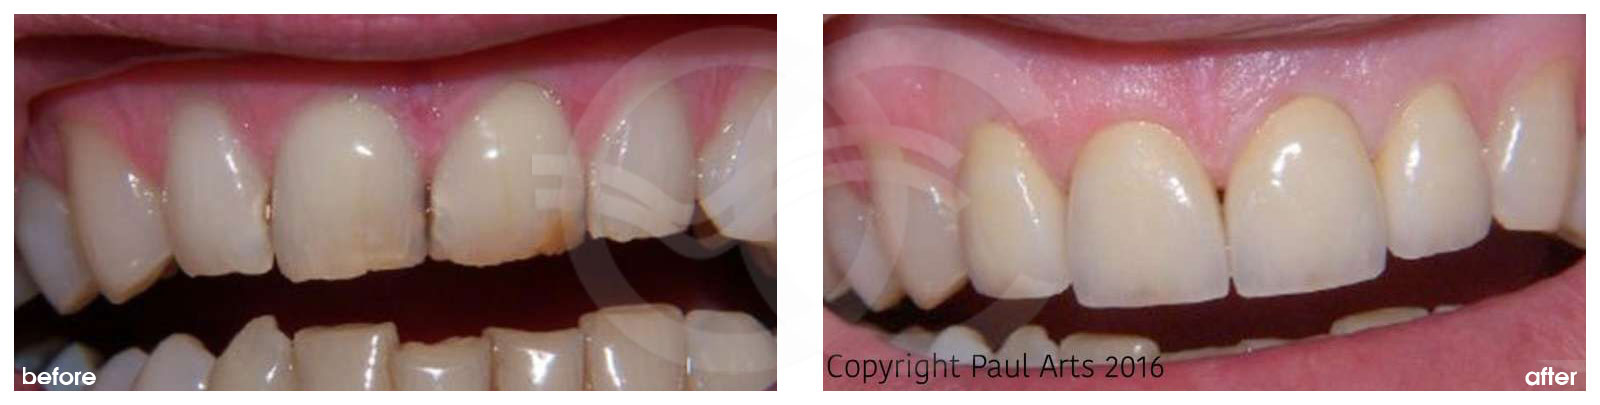 Cosmetic Dentistry Before After Discolored and Chipped Teeth Improved. Photo frontal Ocean Clinic Marbella Spain